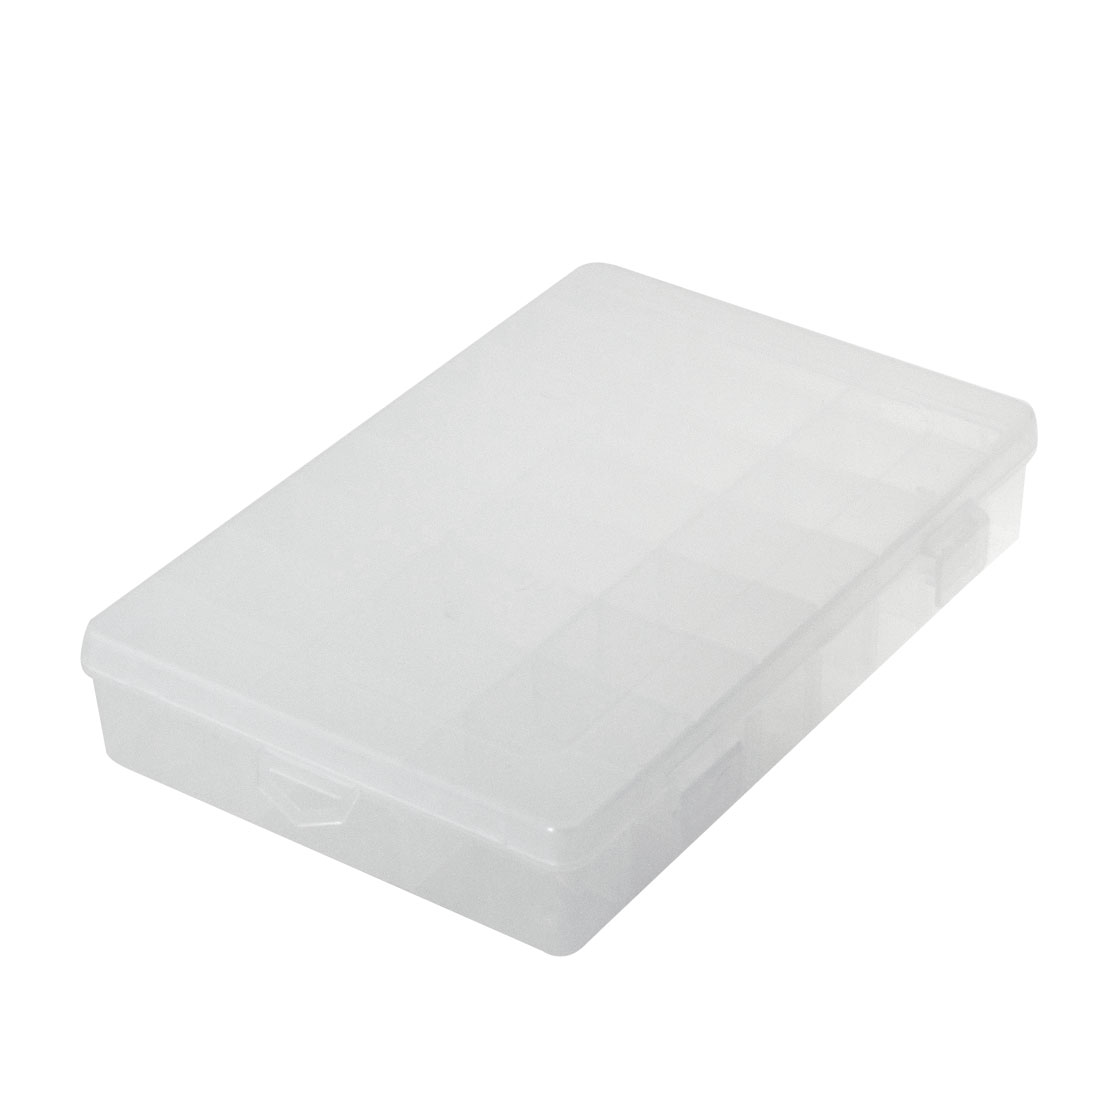 Jewelry Components Plastic Assort Case Storage Collect Box Clear White